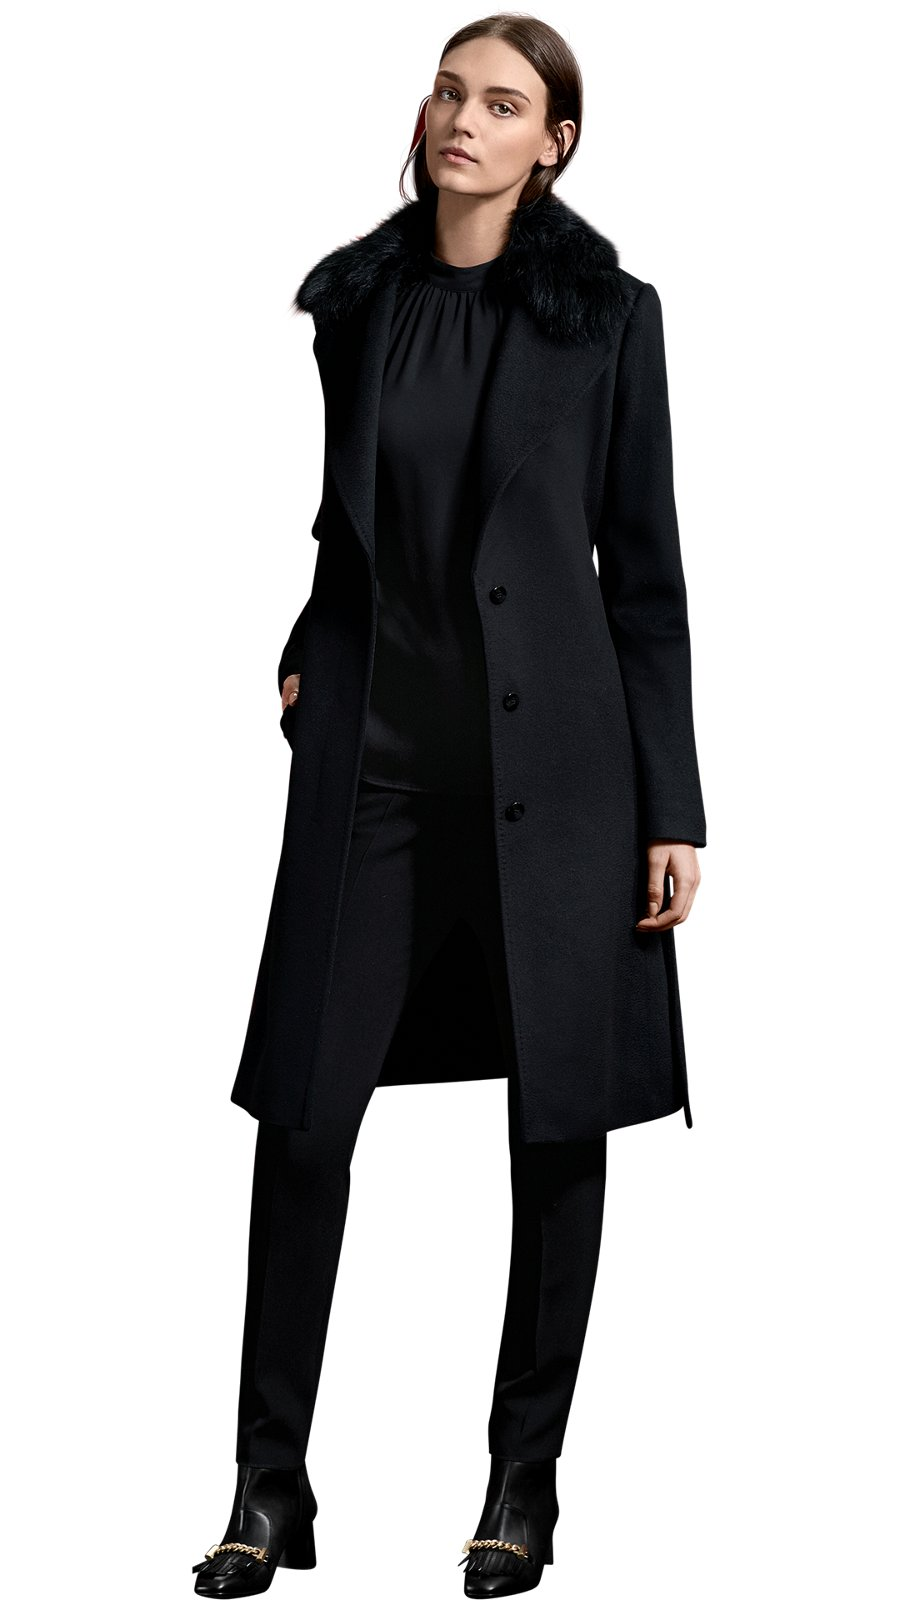 Women wearing wedding diapers - Female Model Wearing A Black Coat A Black Blouse Tailored Trousers And Heeled Boots